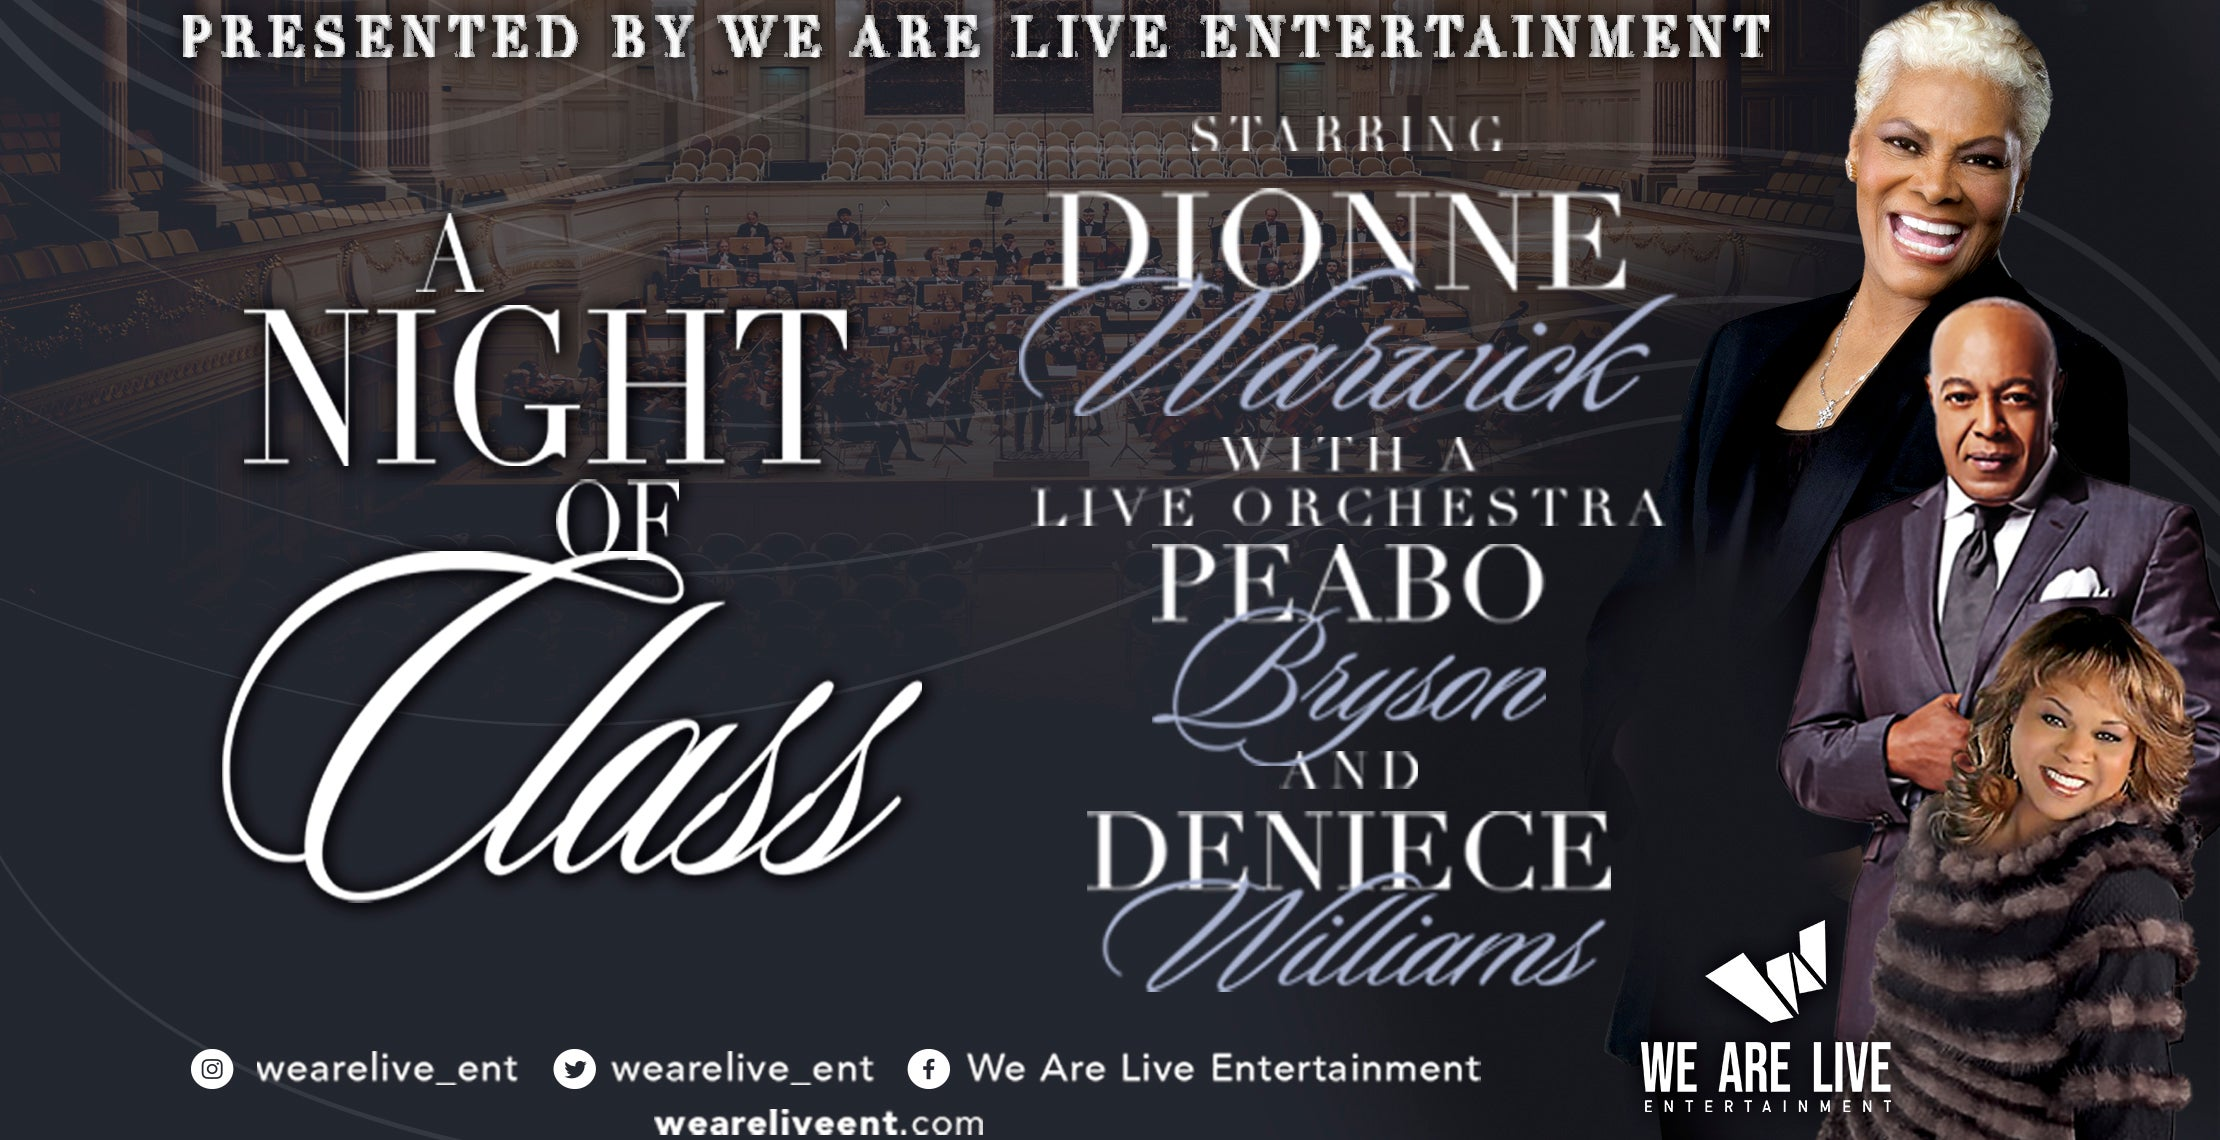 """A Night Of Class"" Starring Dionne Warwick, Peabo Bryson, and Deniece Williams"